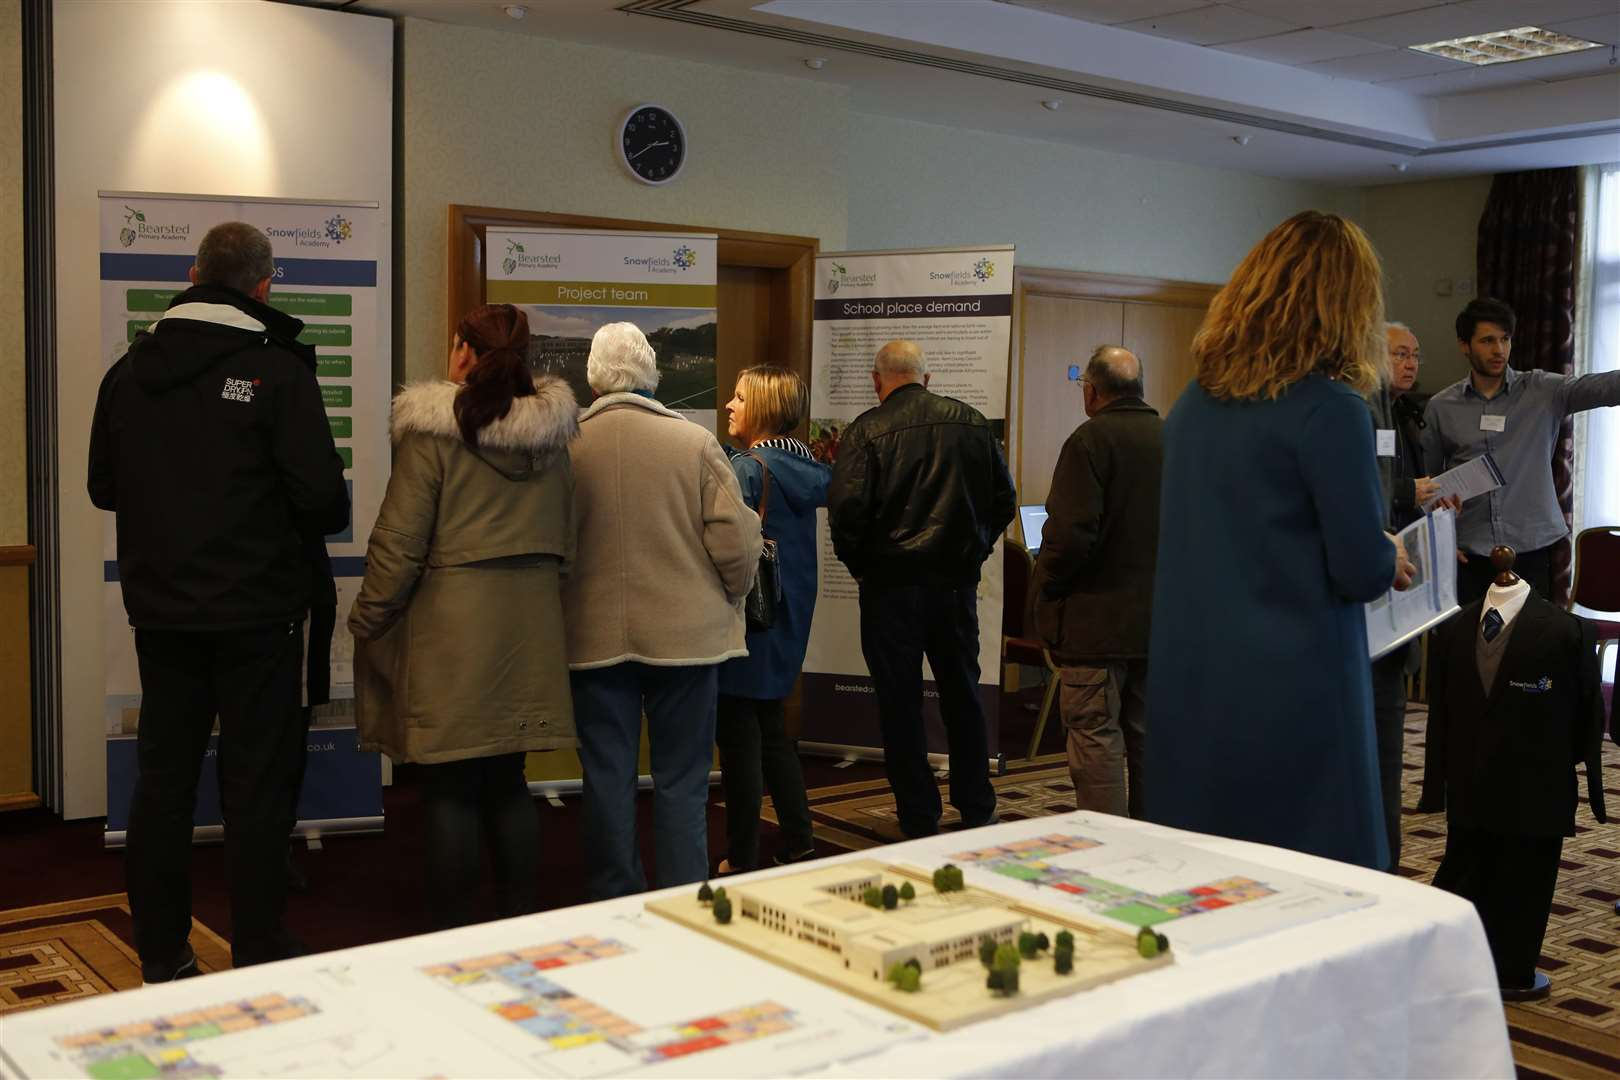 The public examine the plans